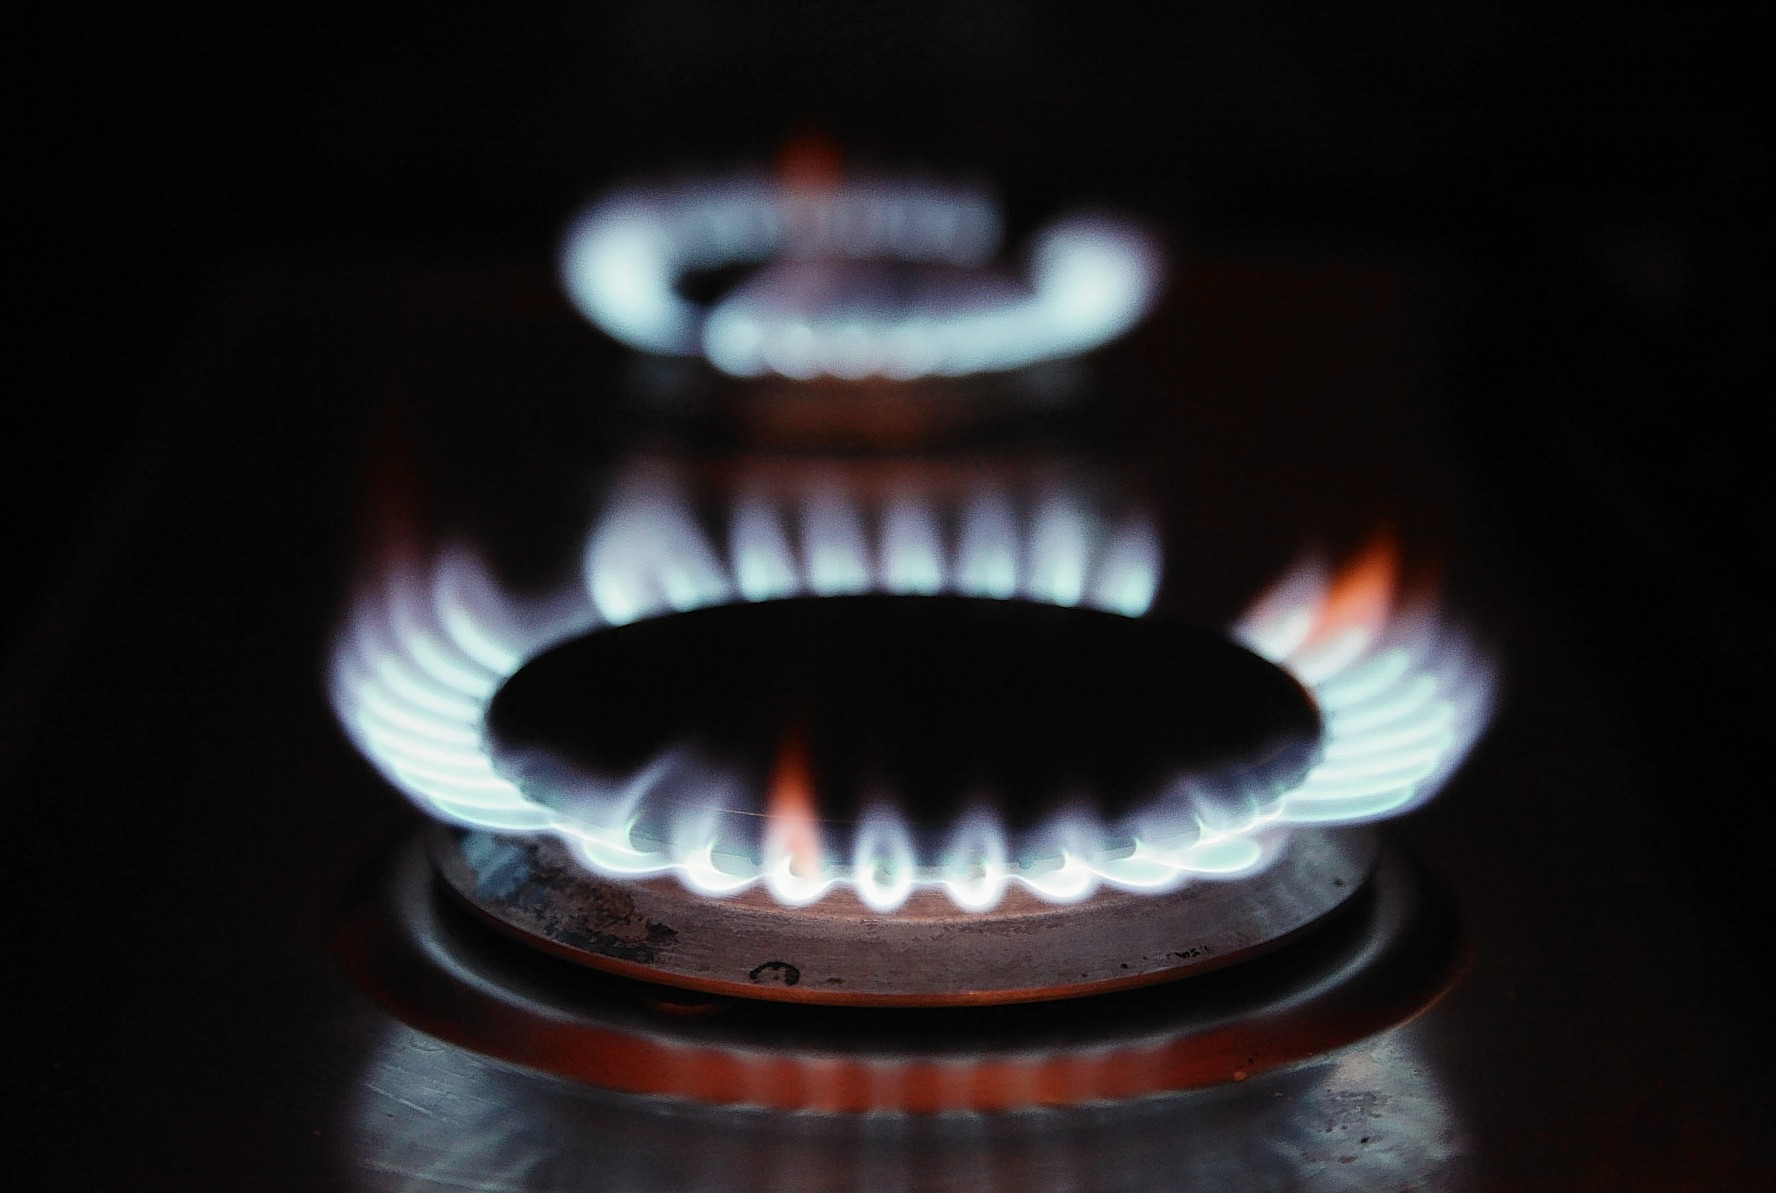 The UK's Committee on Climate Change, an independent adviser to the government, released a report last month calling for a ban on new homes being connected to the gas grid by 2025.